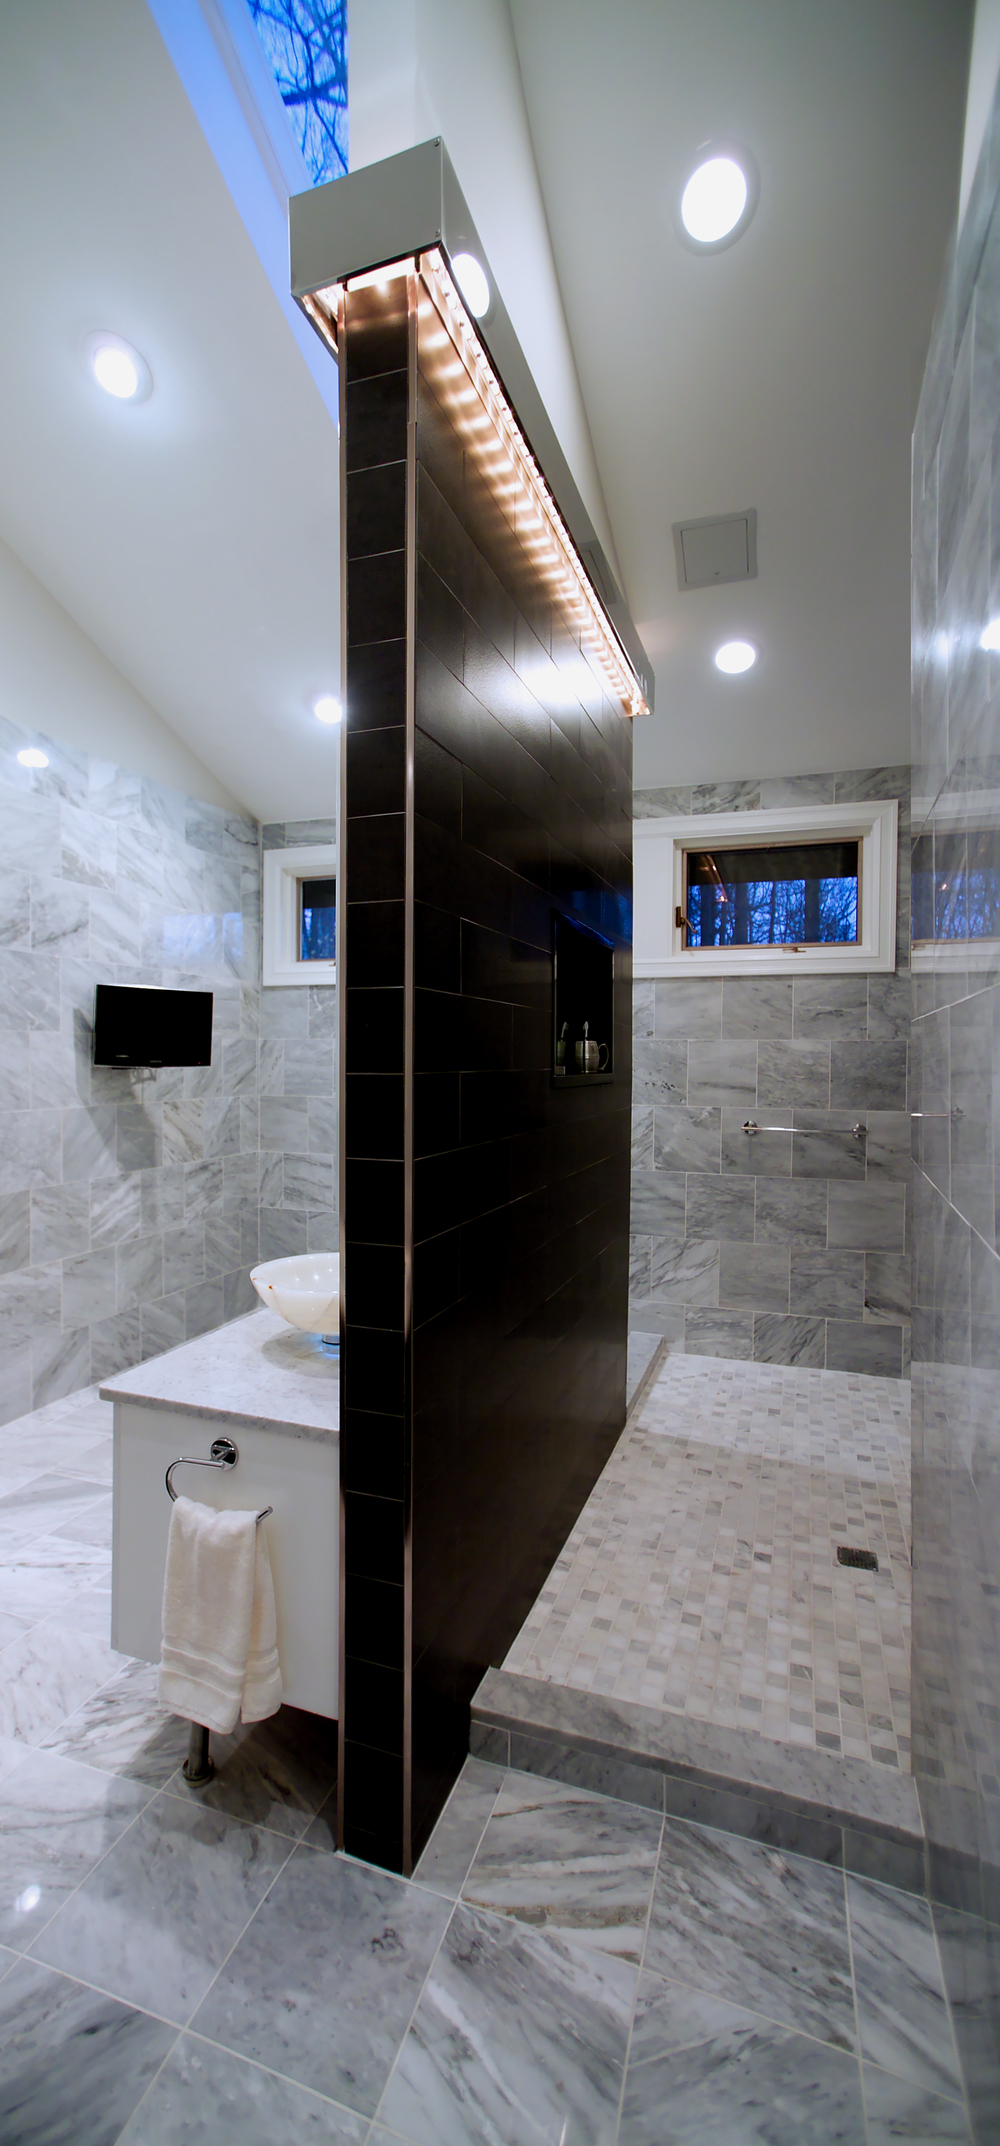 Master Bath 4 - View of Shower Area & Vanity.jpg